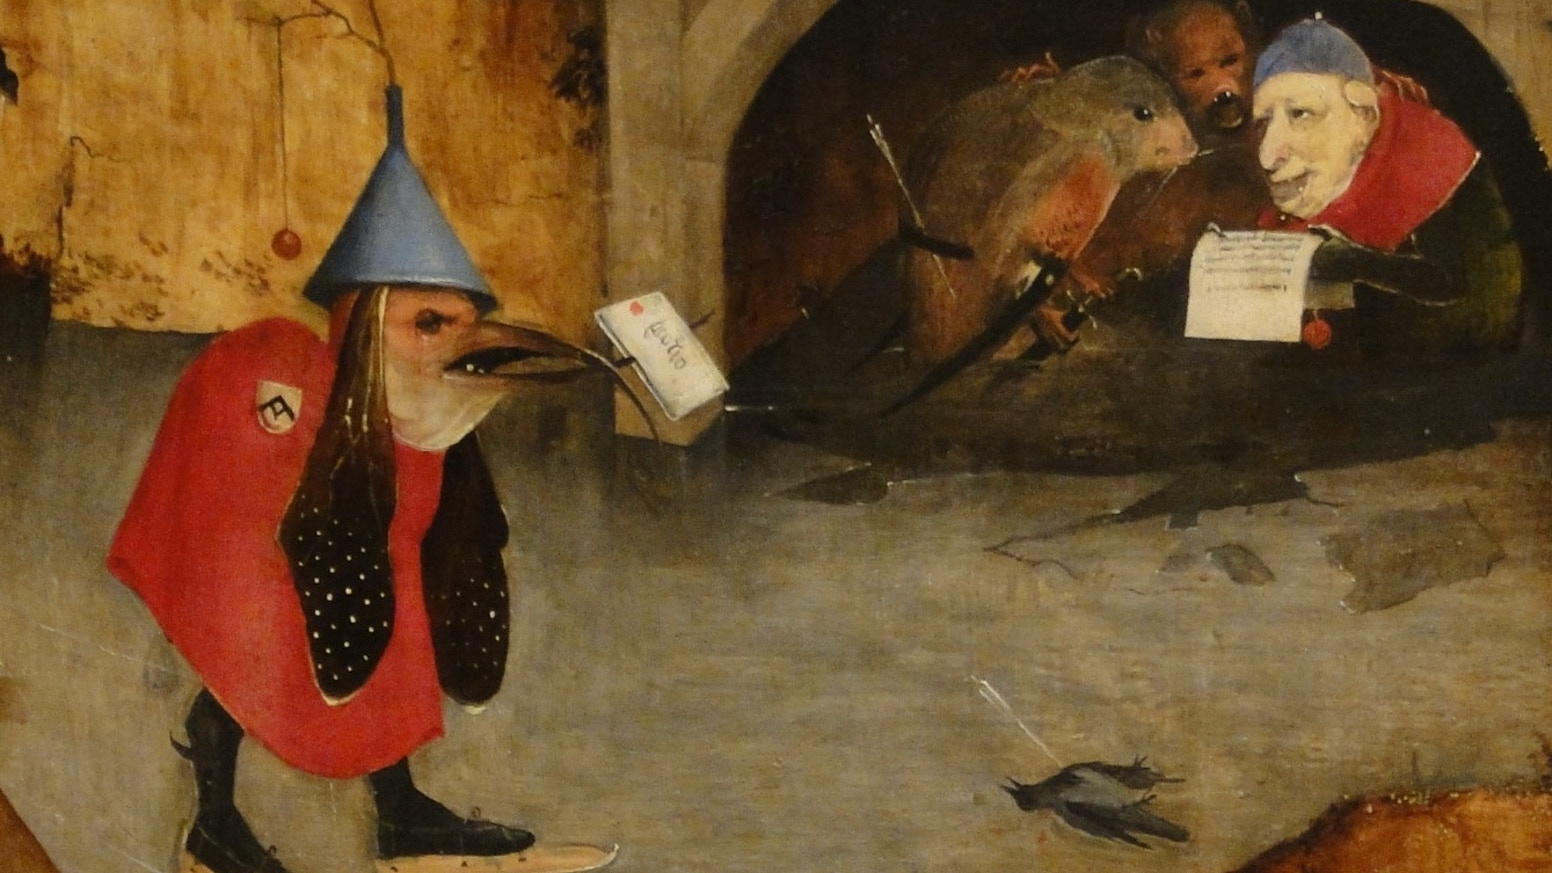 An Animated Show That Uses The Paintings Of Hieronymus Bosch To Tell Story Bat